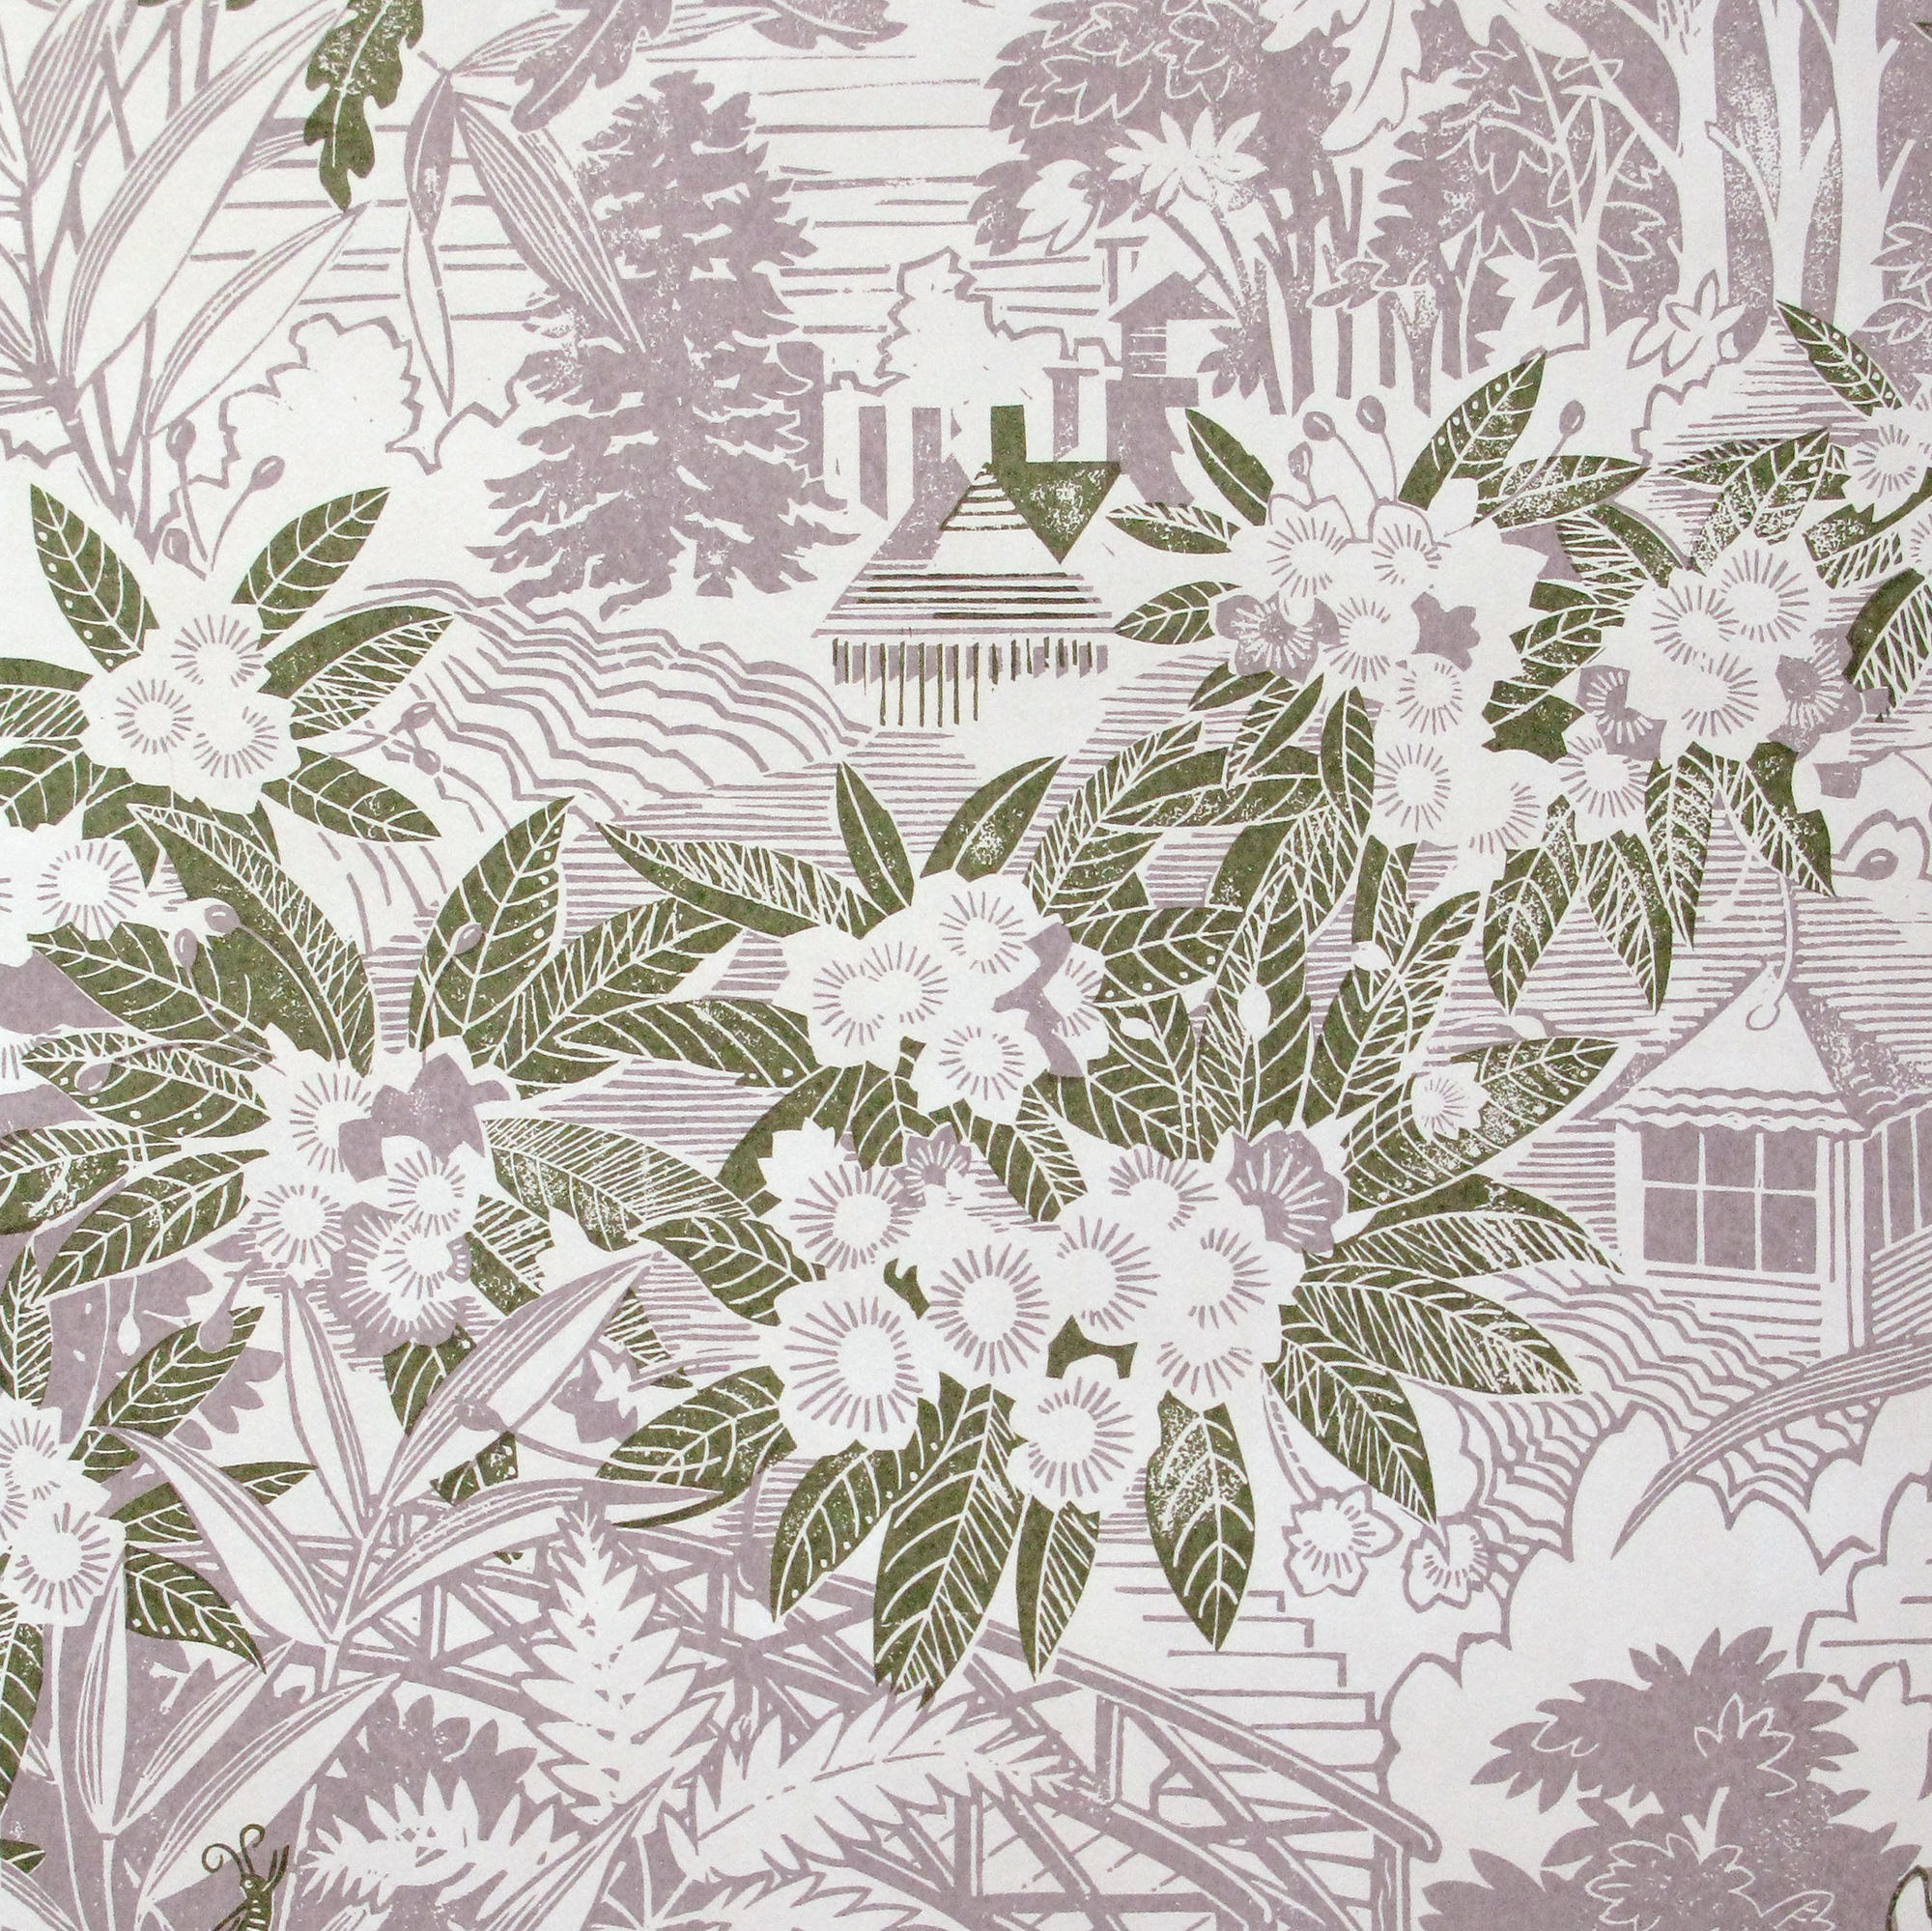 The New Neutrals: ''Webb's Wonder' wallpaper by Rapture & Wright in Lilac Grey. Also available as a fabric, and in six different colour ways.